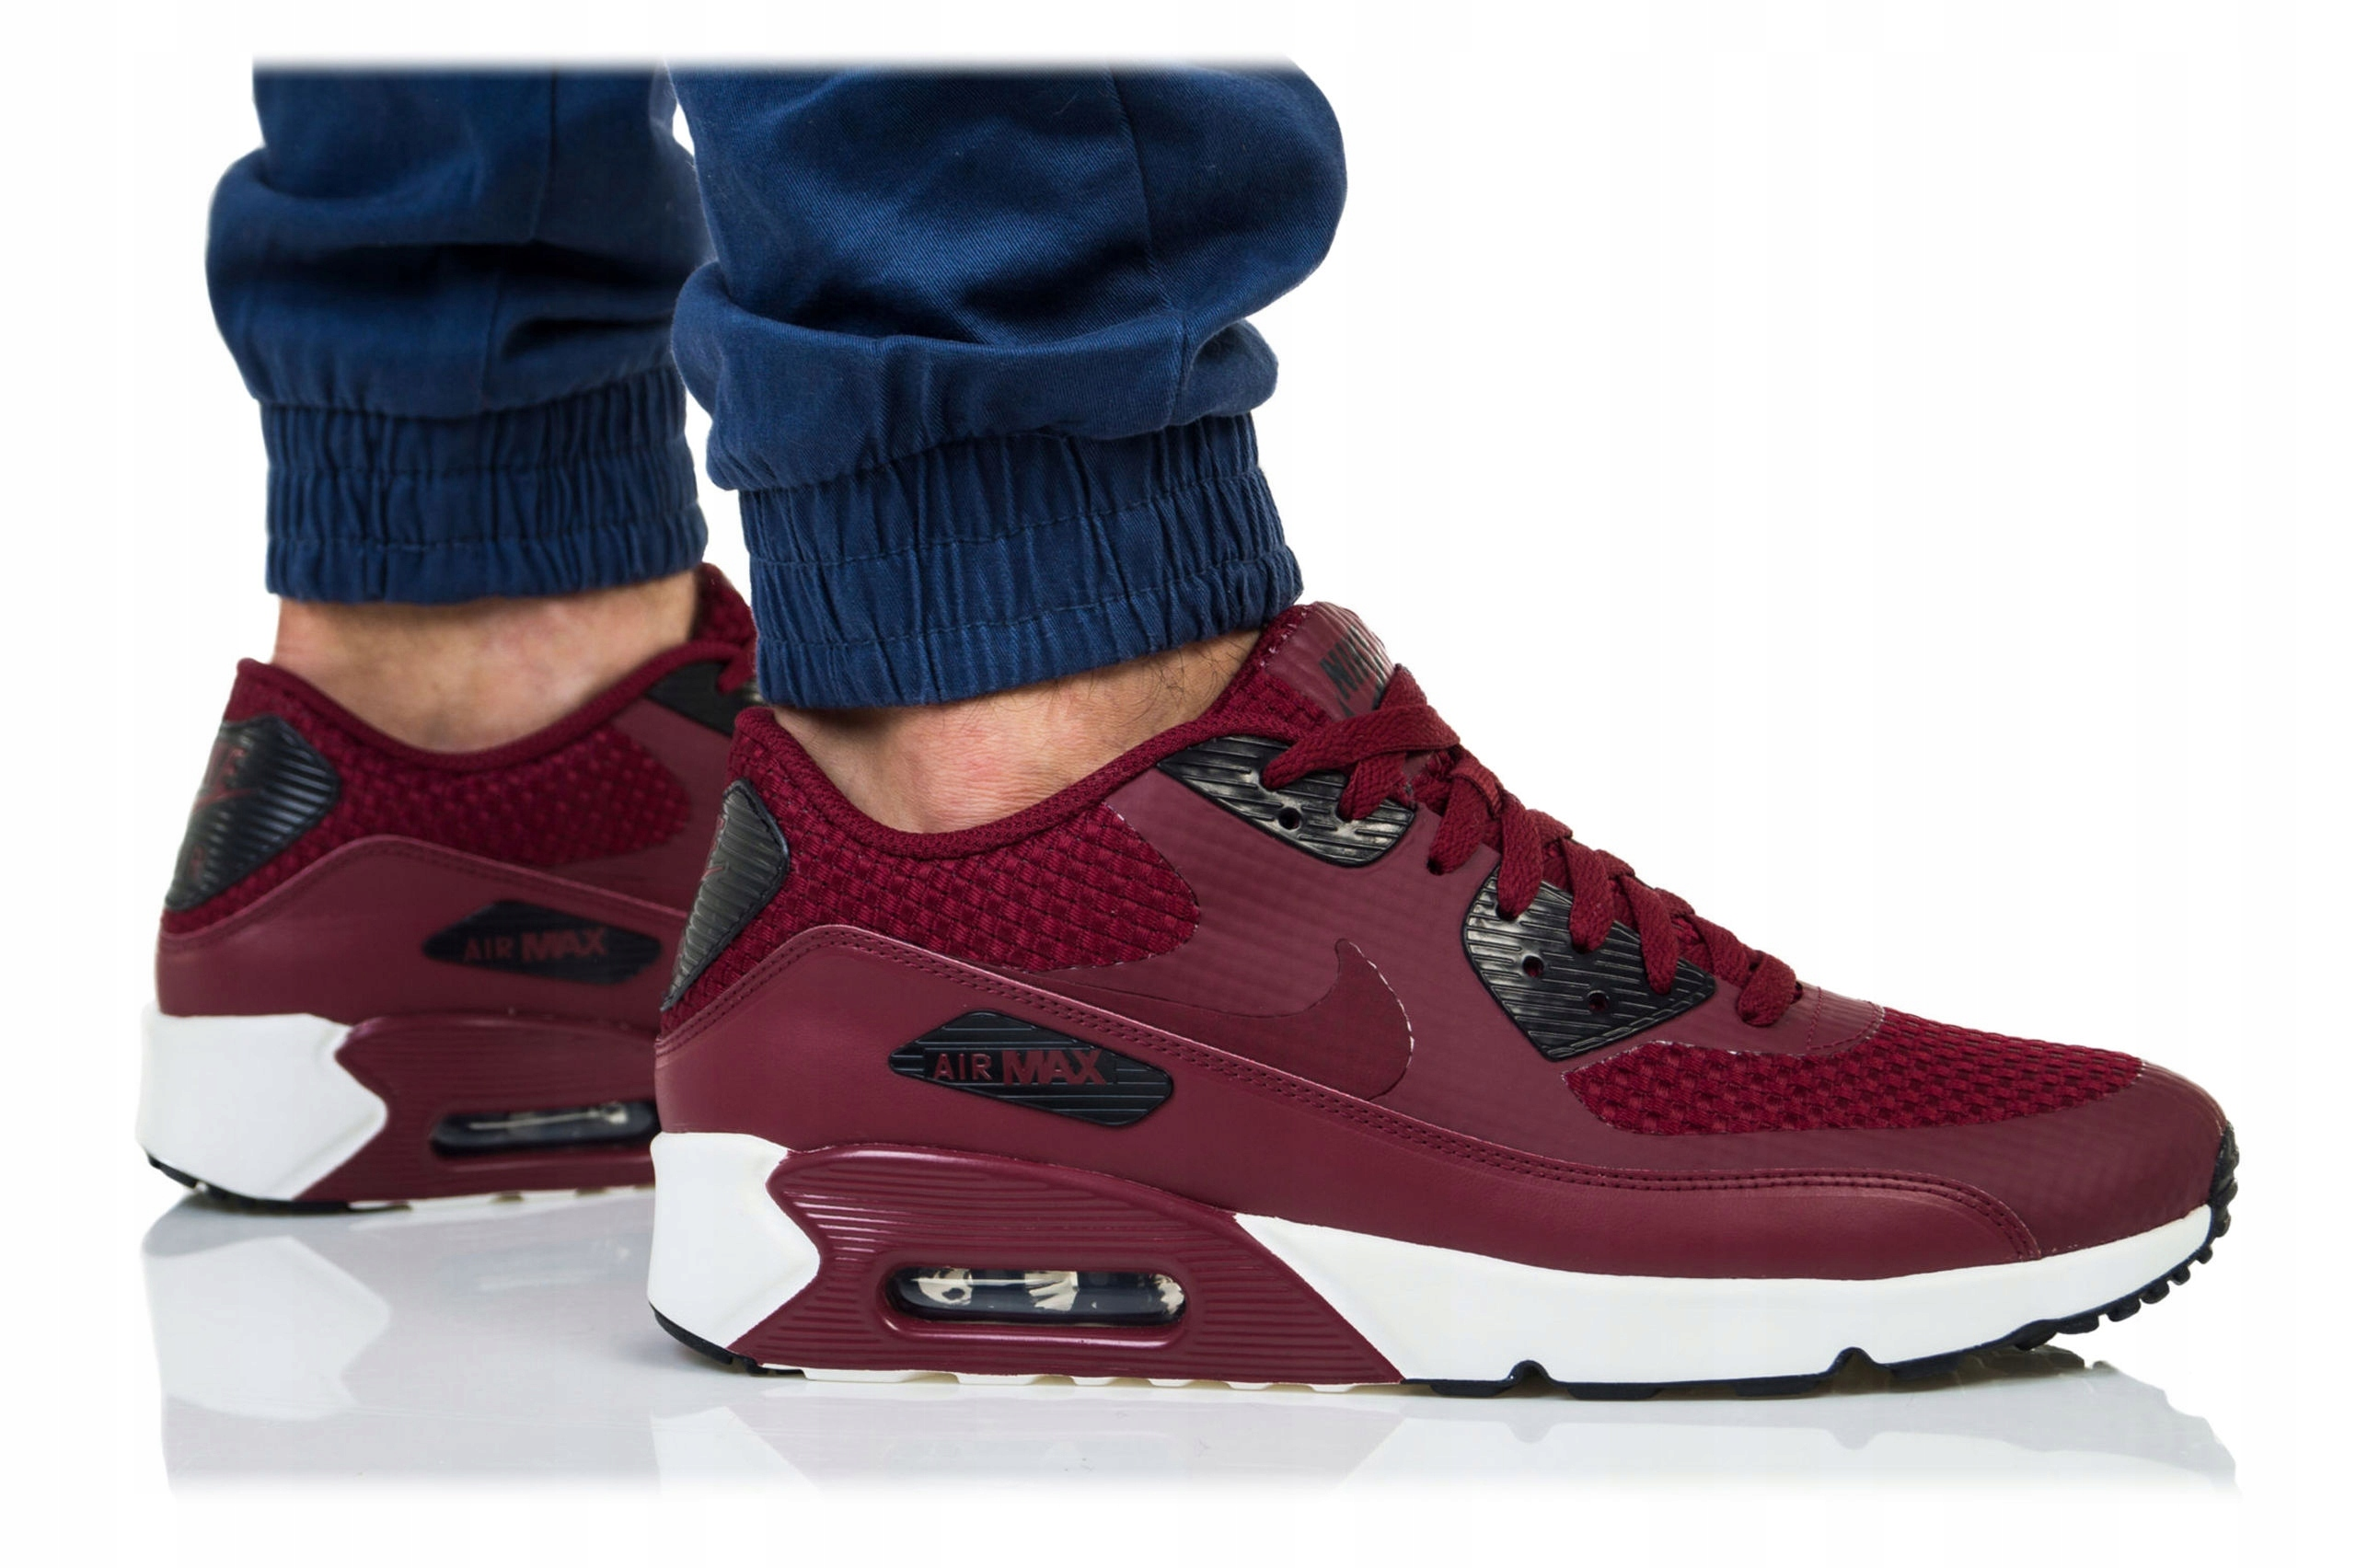 separation shoes 95efe 2c685 BUTY NIKE MĘSKIE AIR MAX 90 ULTRA 2.0 876005-601 - 7489109484 ...